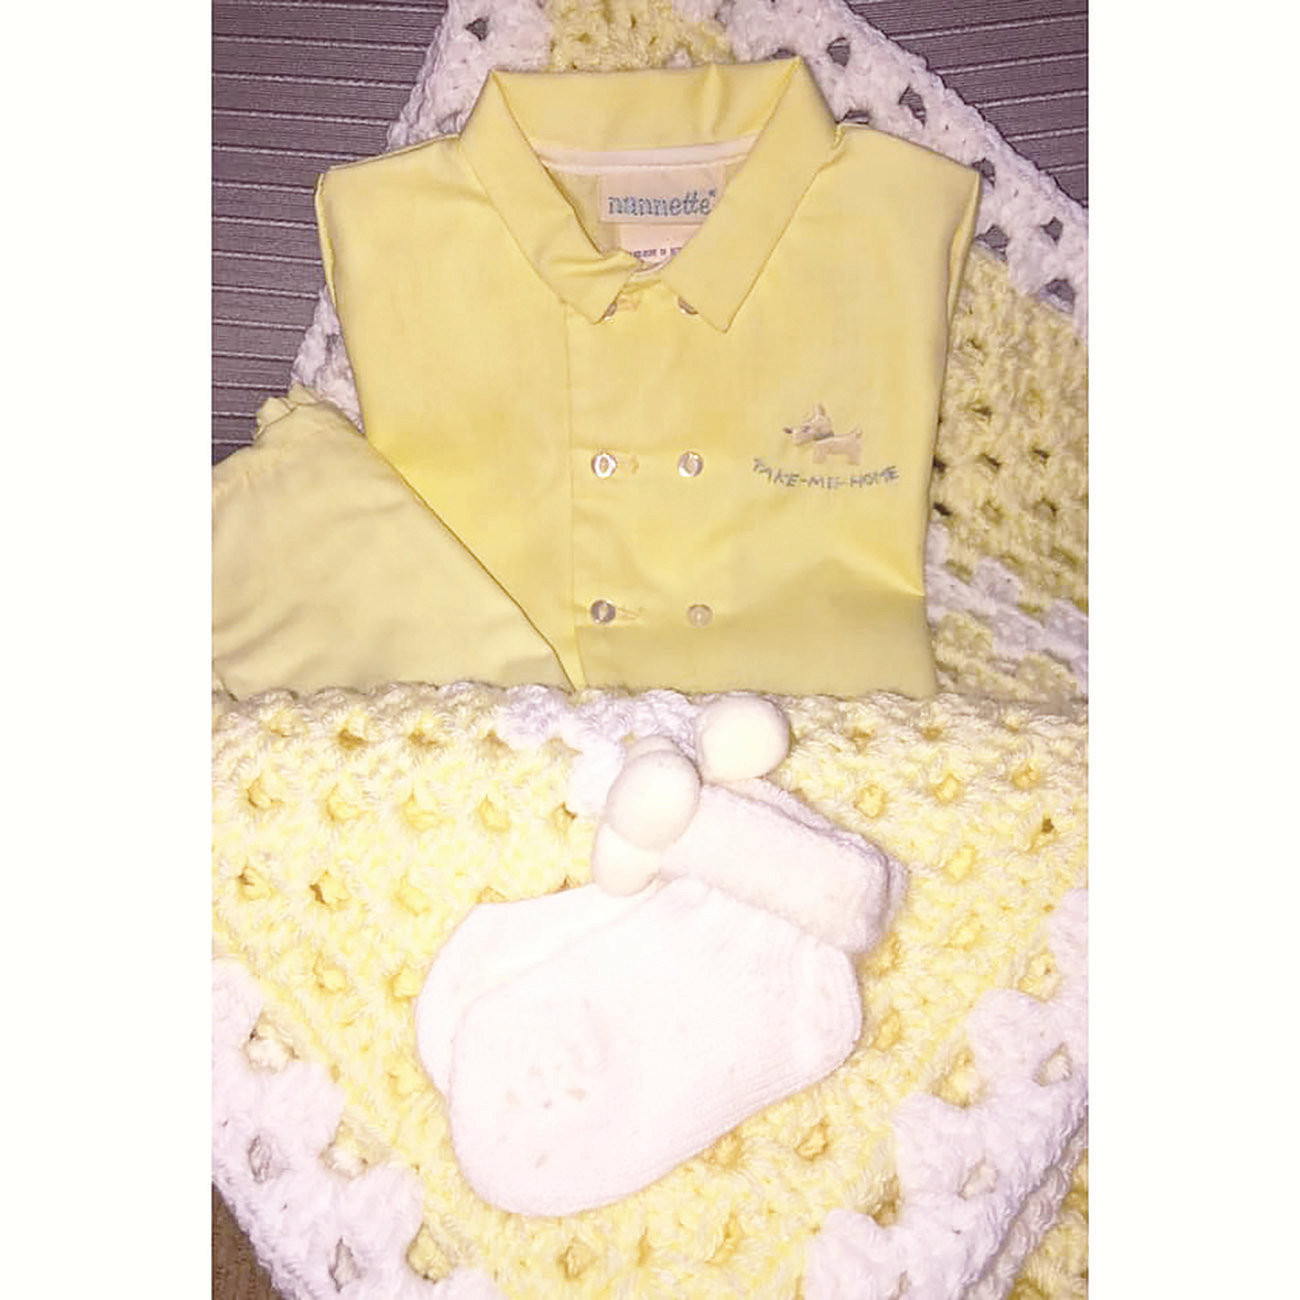 This newborn outfit from over 50 years ago was recently donated to  UAB's neonatal care unit.